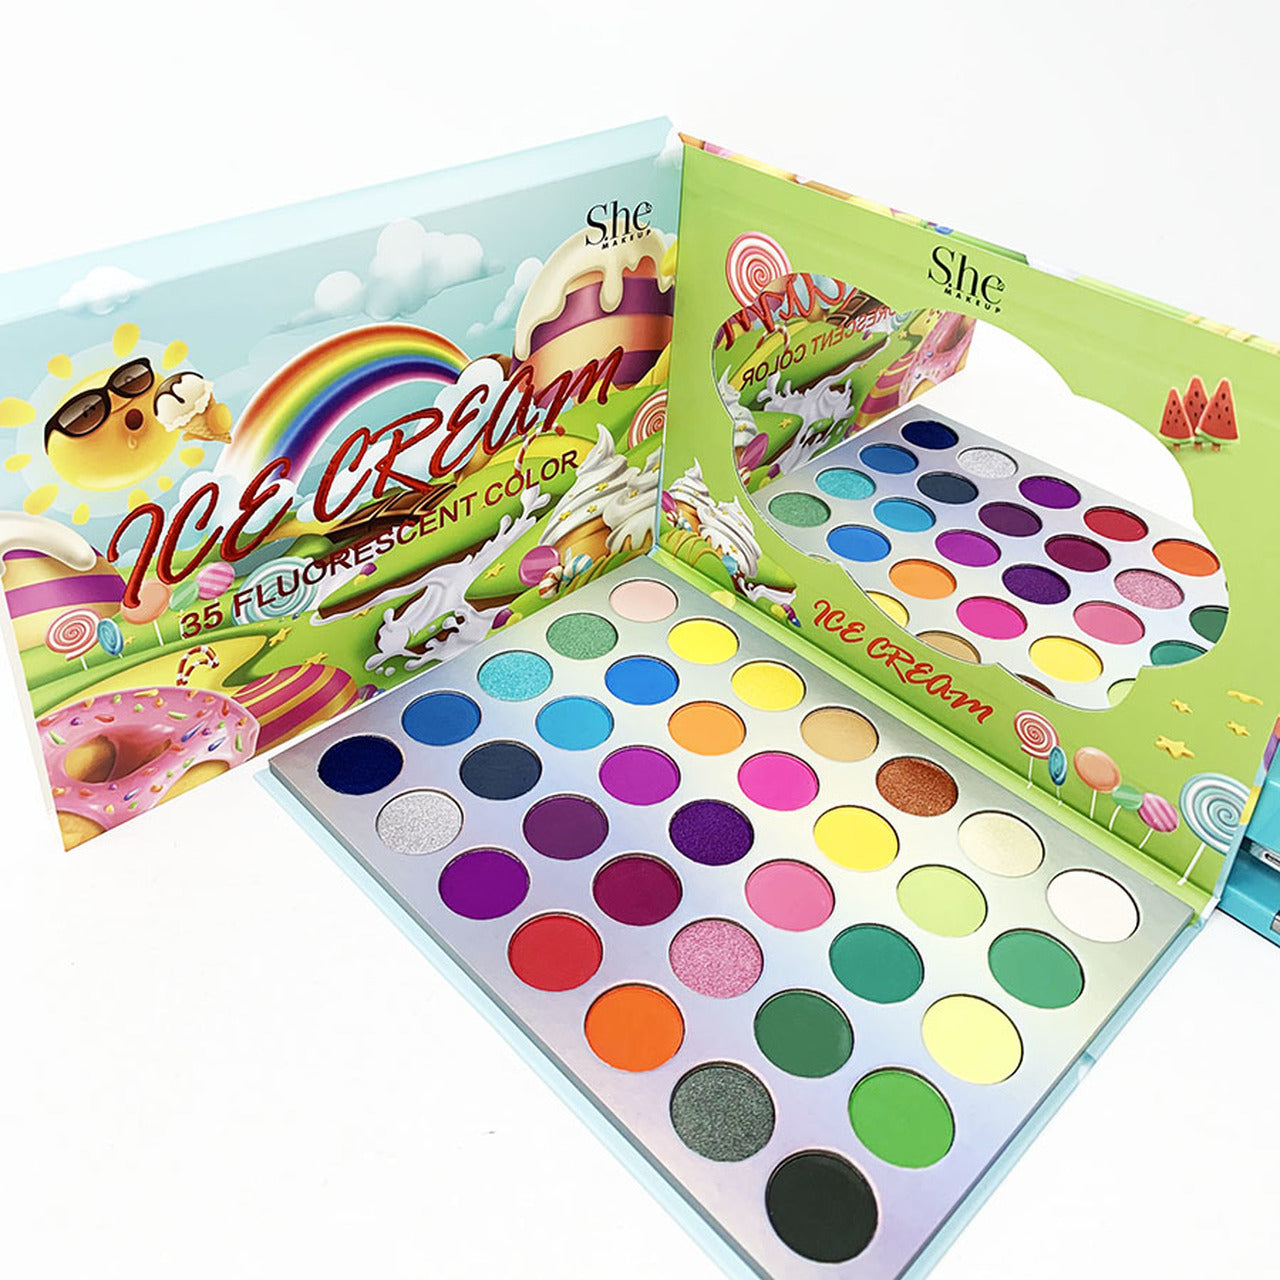 S.he Makeup Fluorescent Ice Cream Eyeshadow Palette